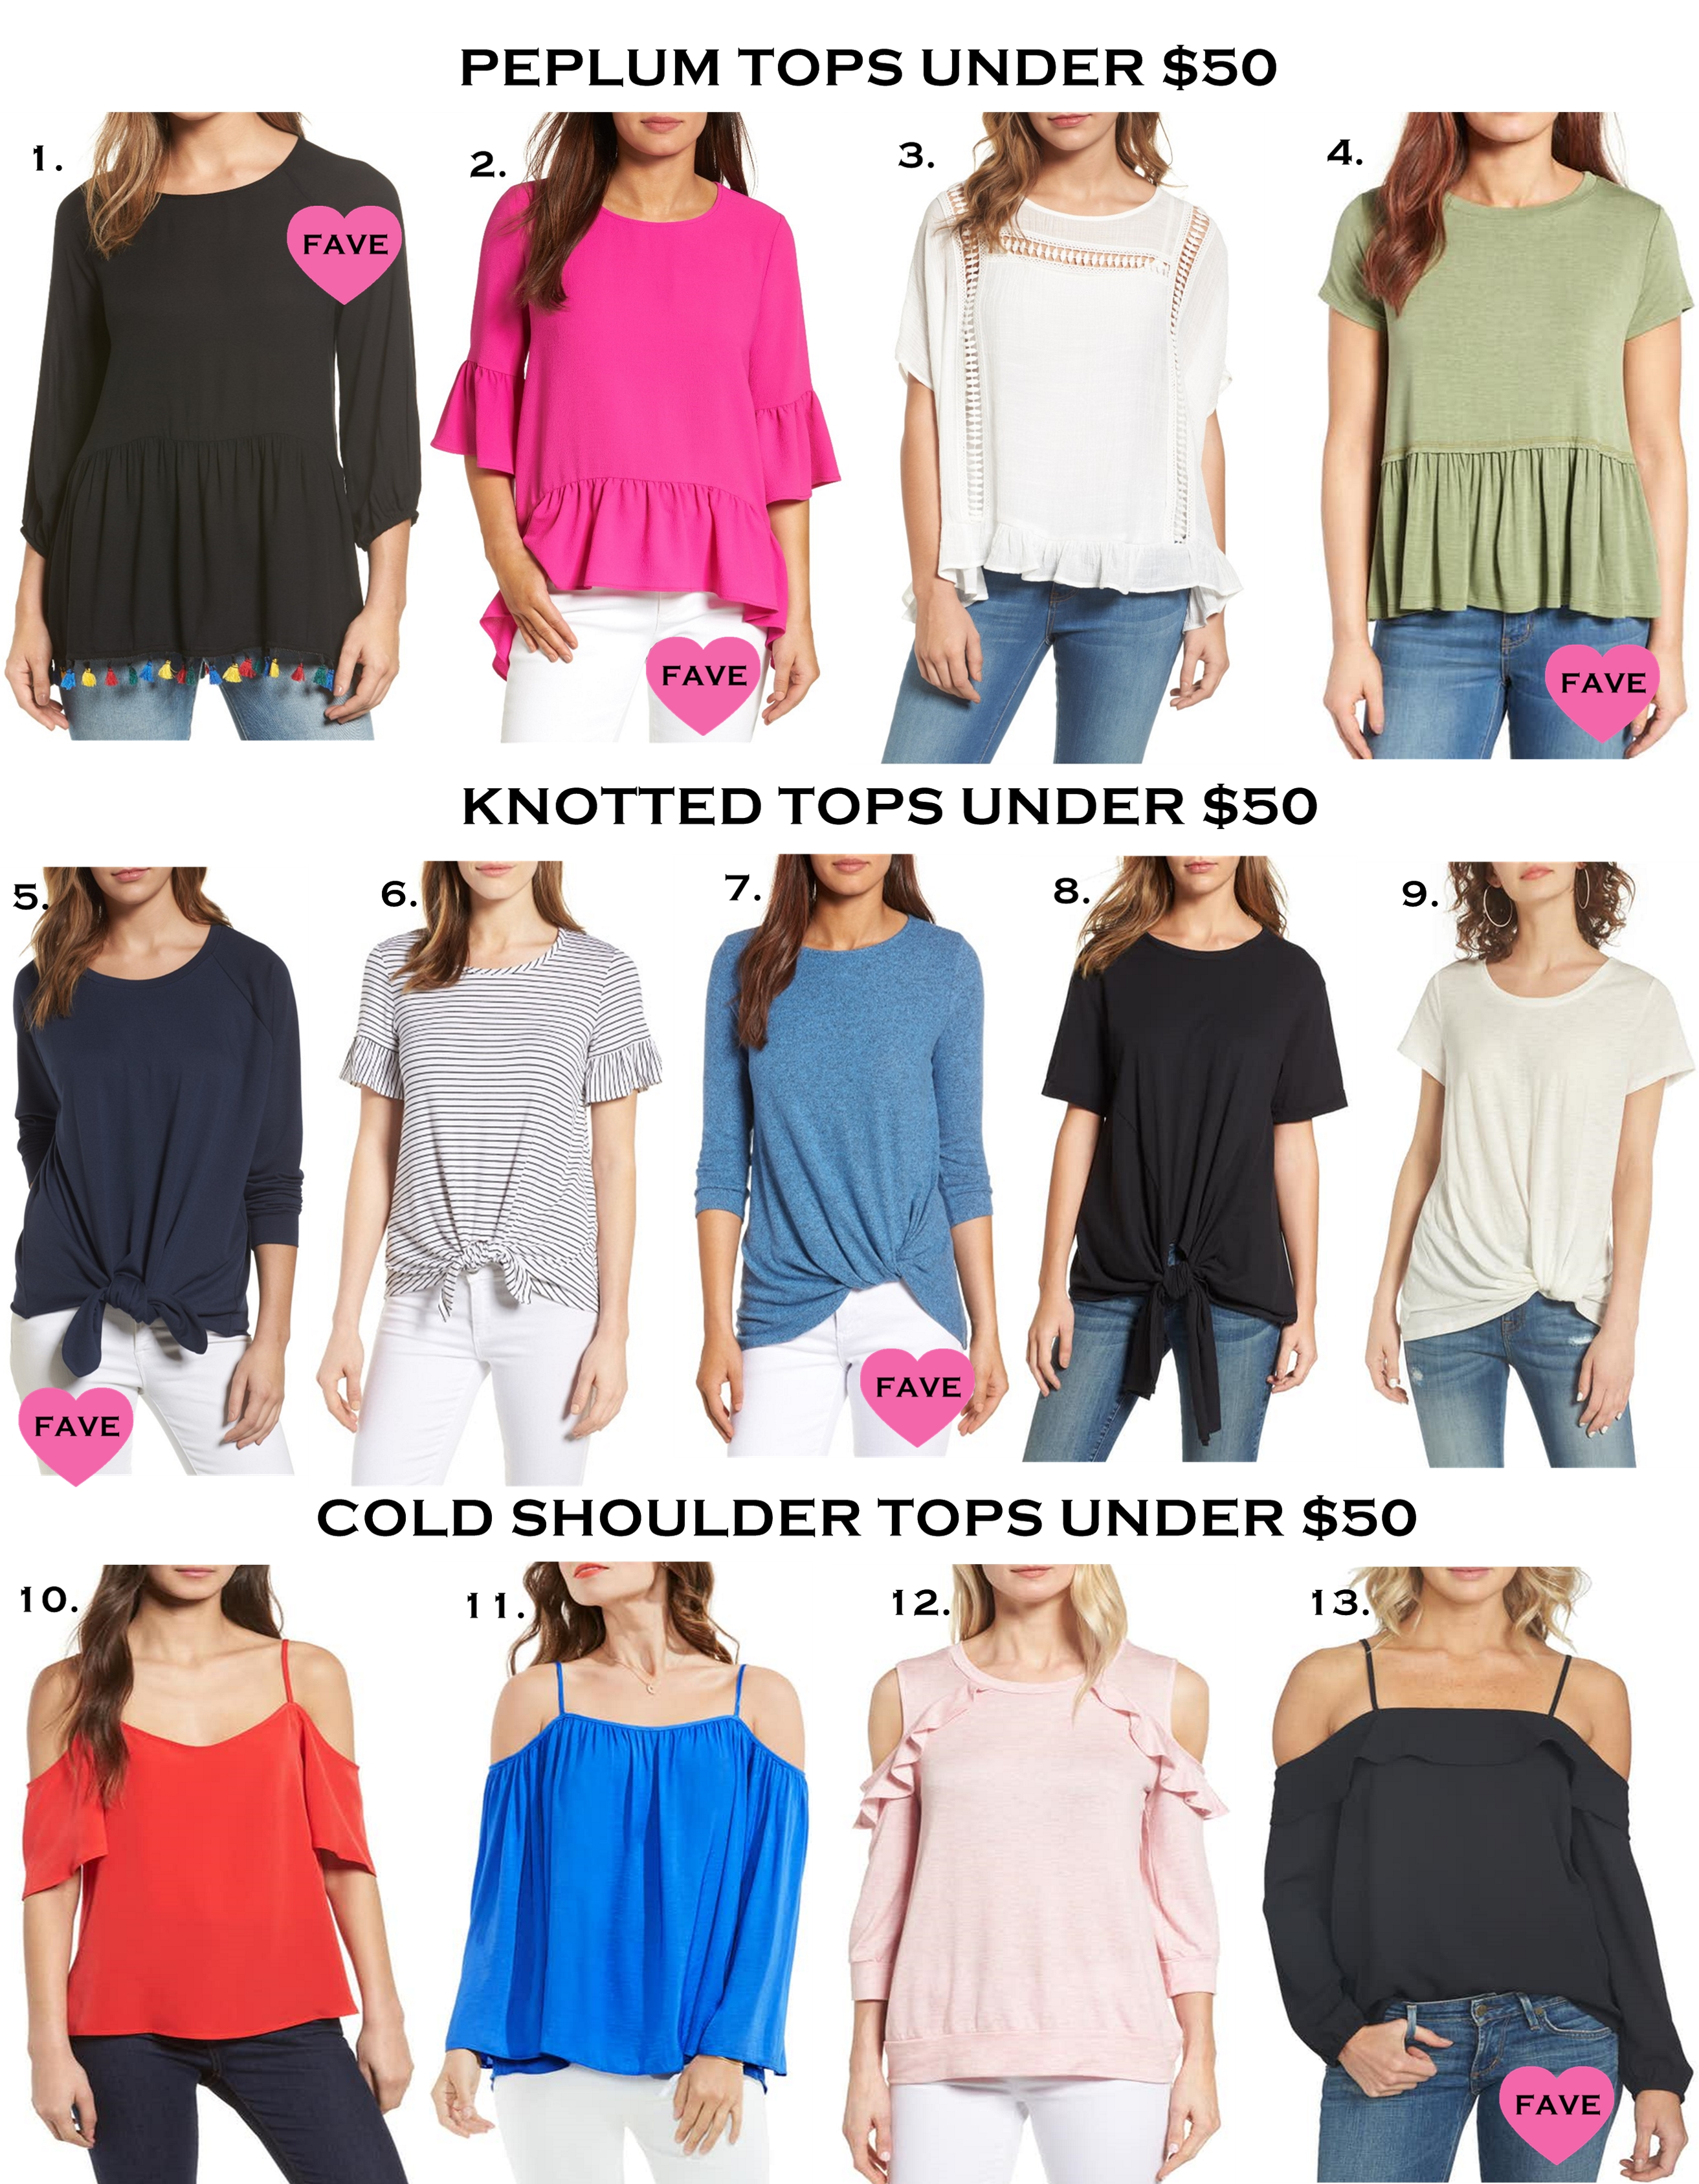 Summer Tops Under $50, cold shoulder tops, knotted tops, peplum tops